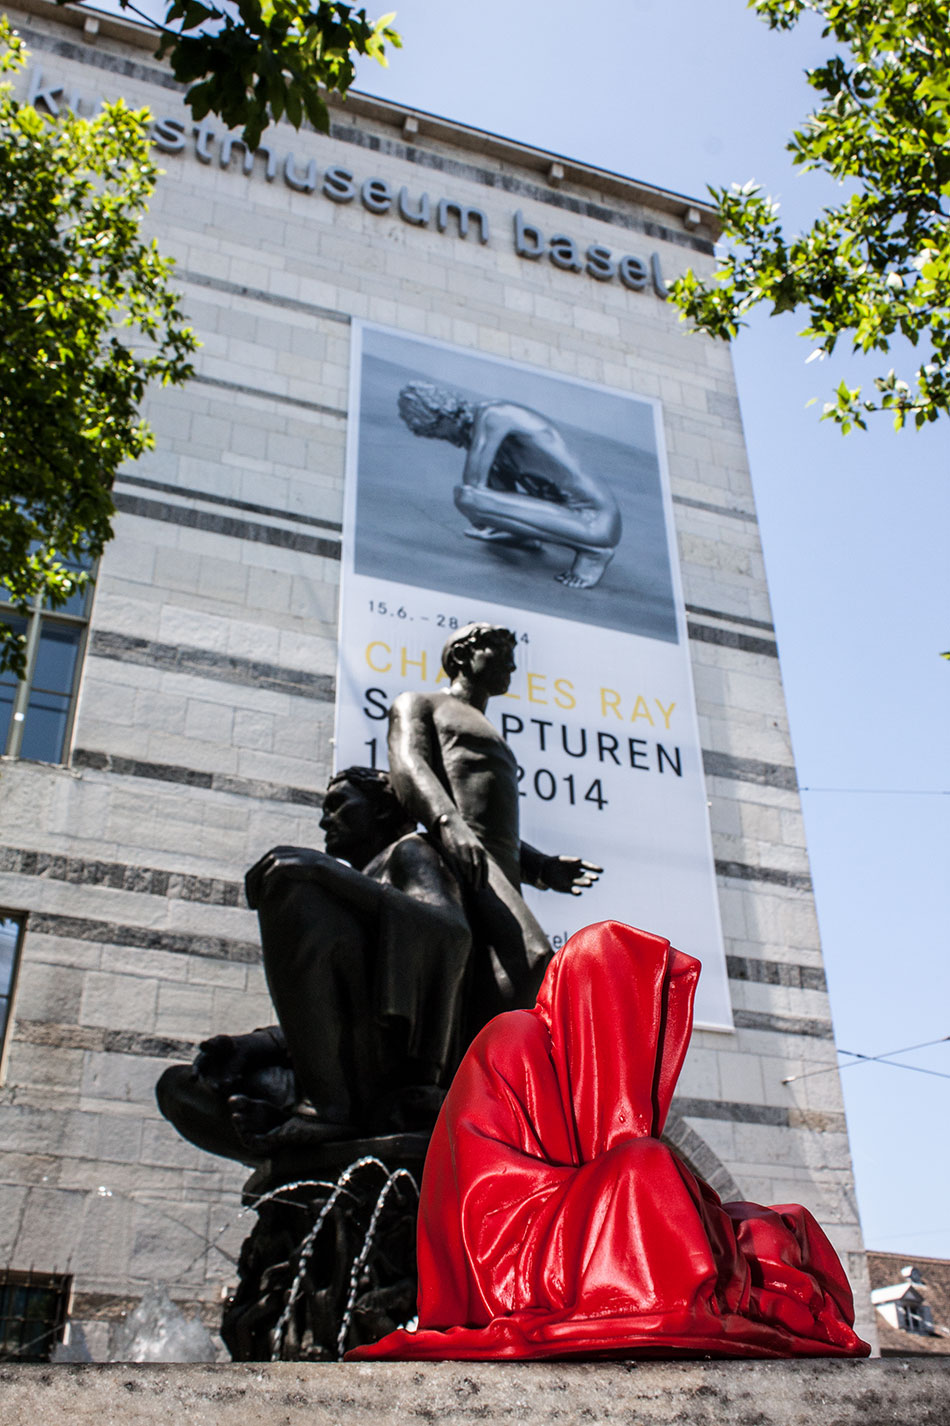 highlights-public-artbasel-kunsthaus-basel-scope-art-show-guardians-of-time-manfred-kielnhofer-steinreich-contemporary-art-sculpture-tour-art-parcours-1593